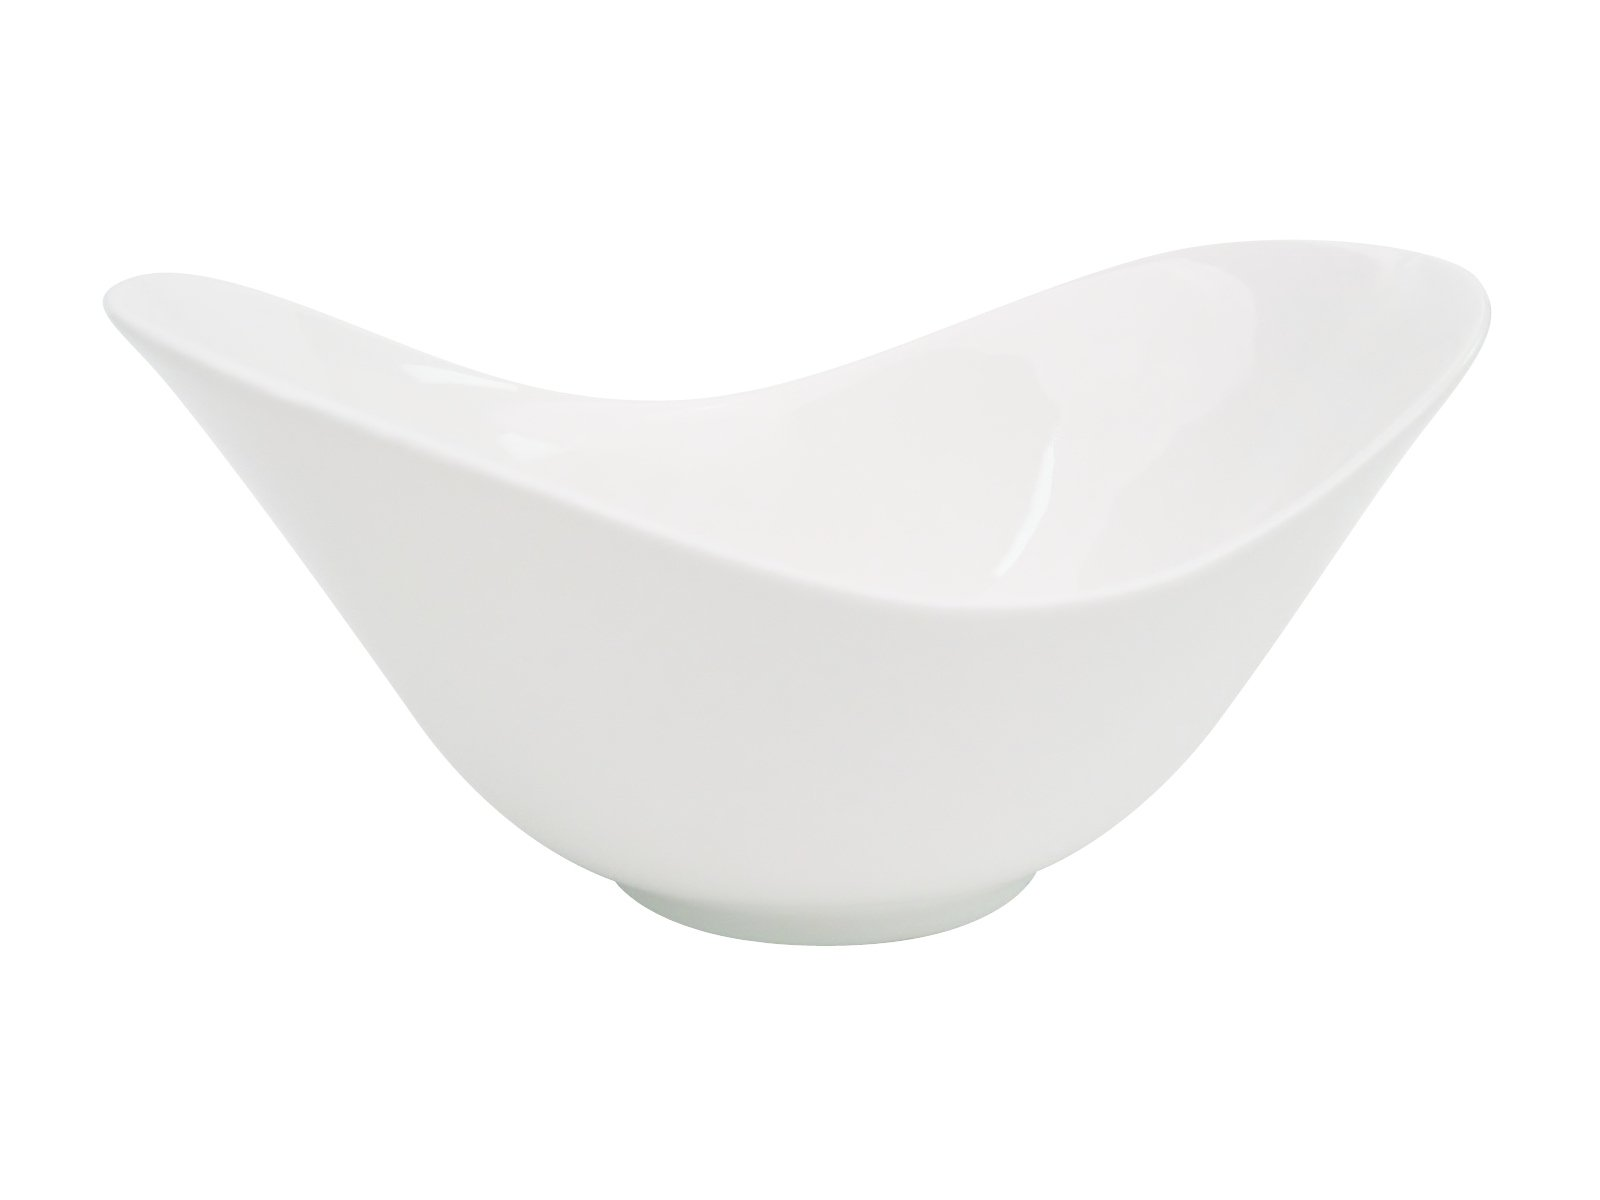 CAC China SHER-72 Sheer 11-Inch by 7-Inch Bone White Porcelain Spirit Dish, Box of 12